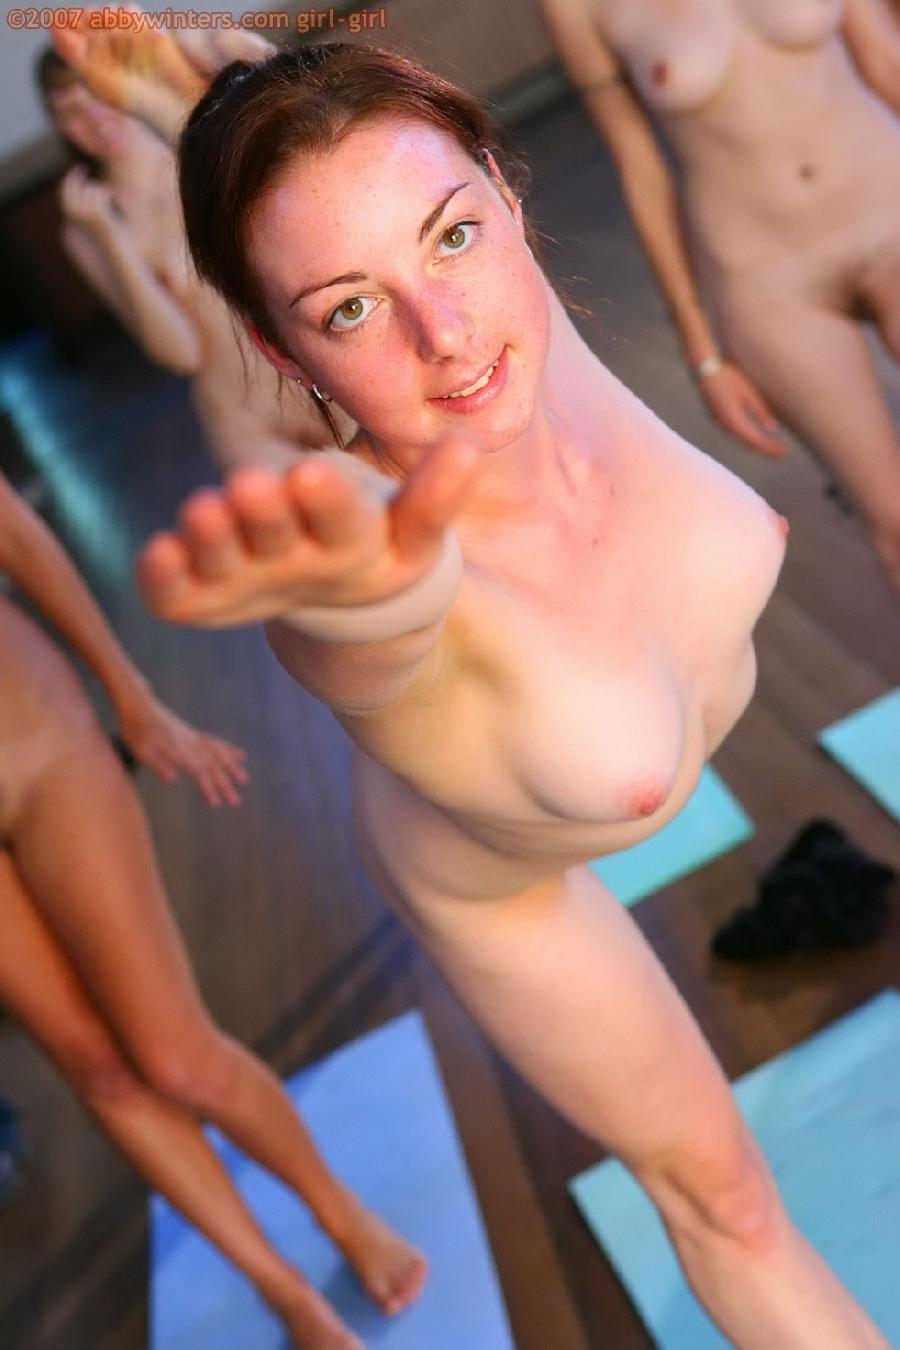 Several women at the gym - 13